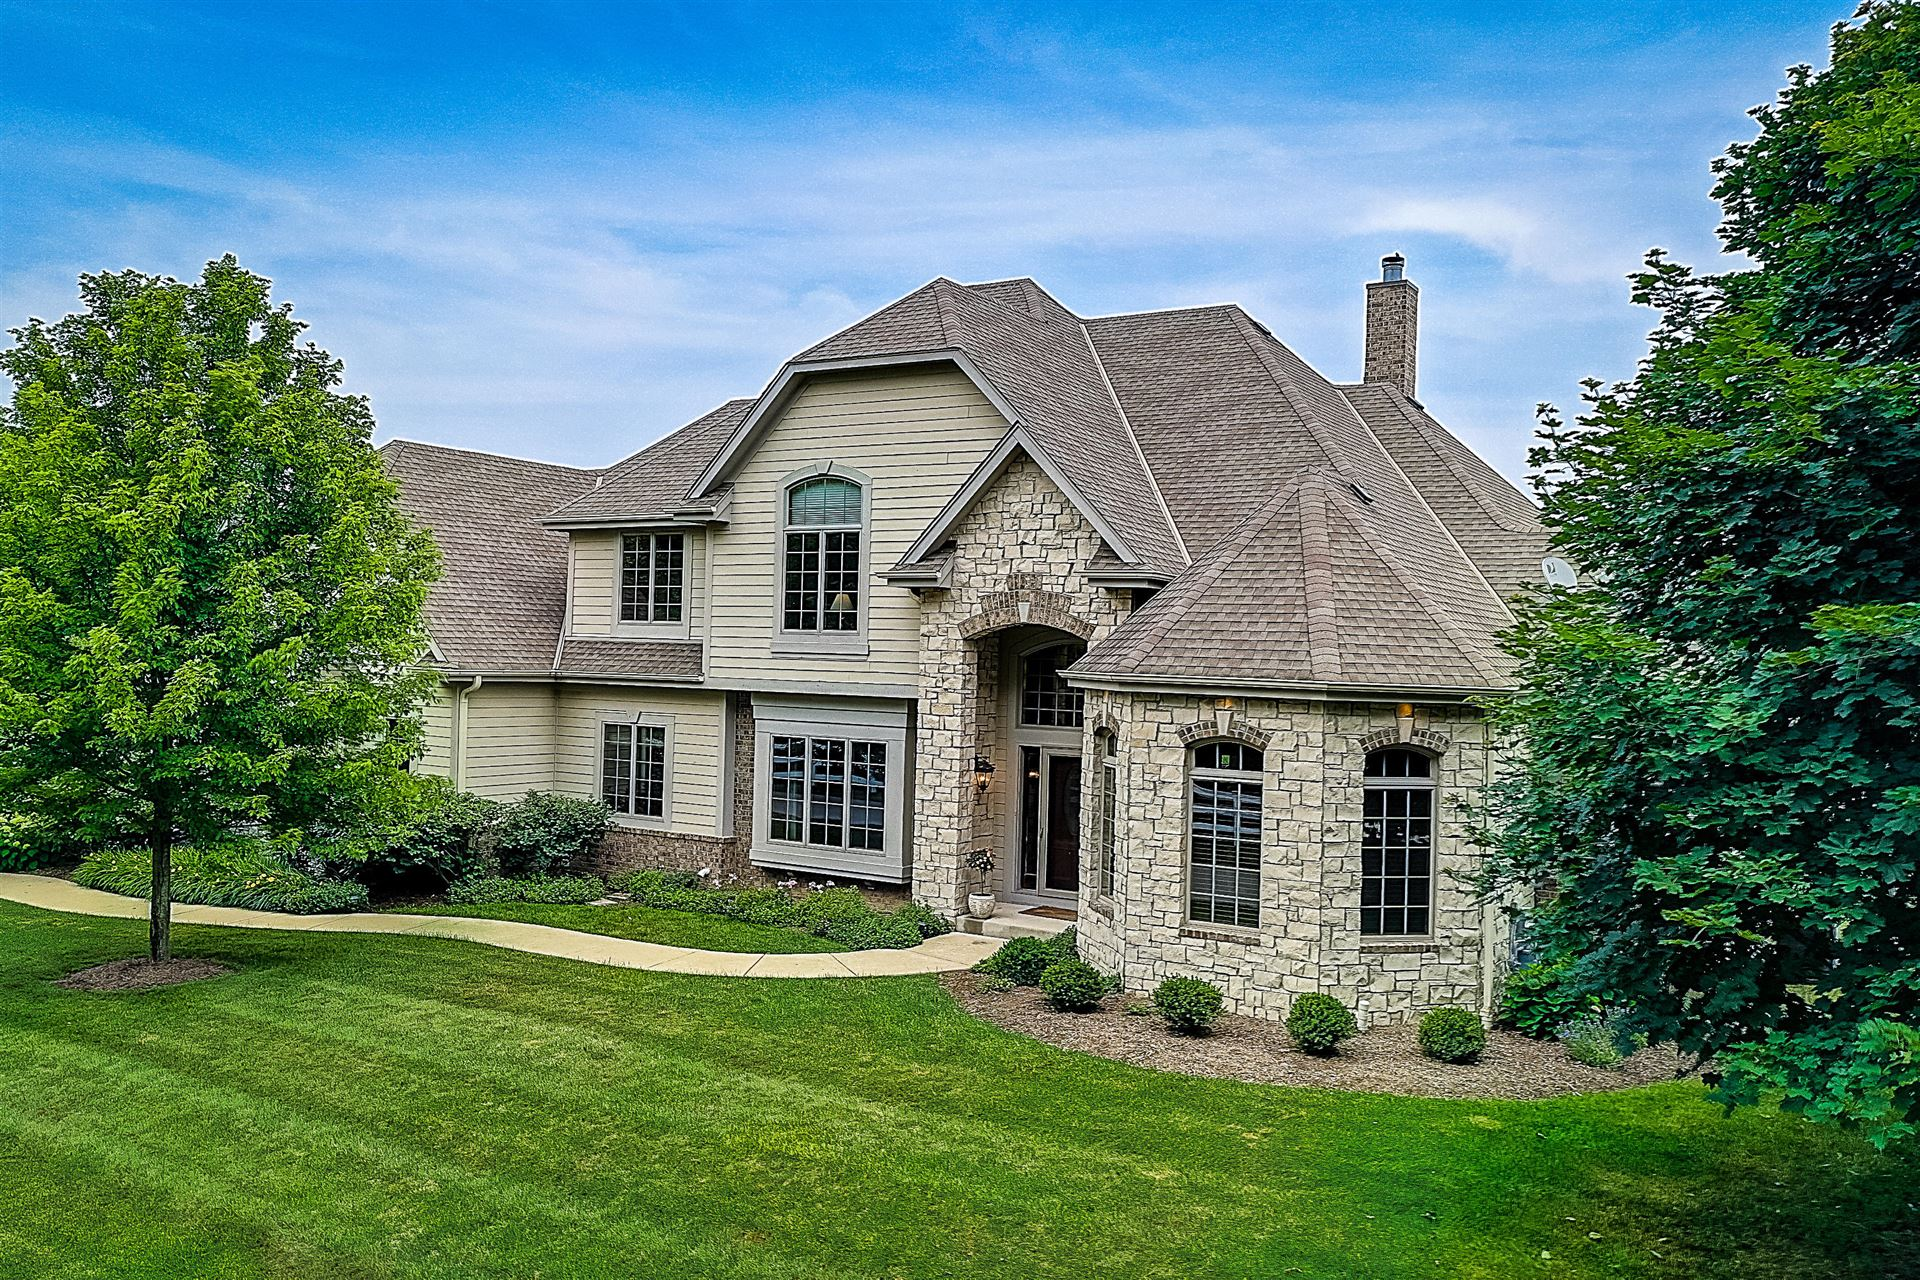 10518 N Stone Creek Dr, Mequon, WI 53092 - #: 1700002